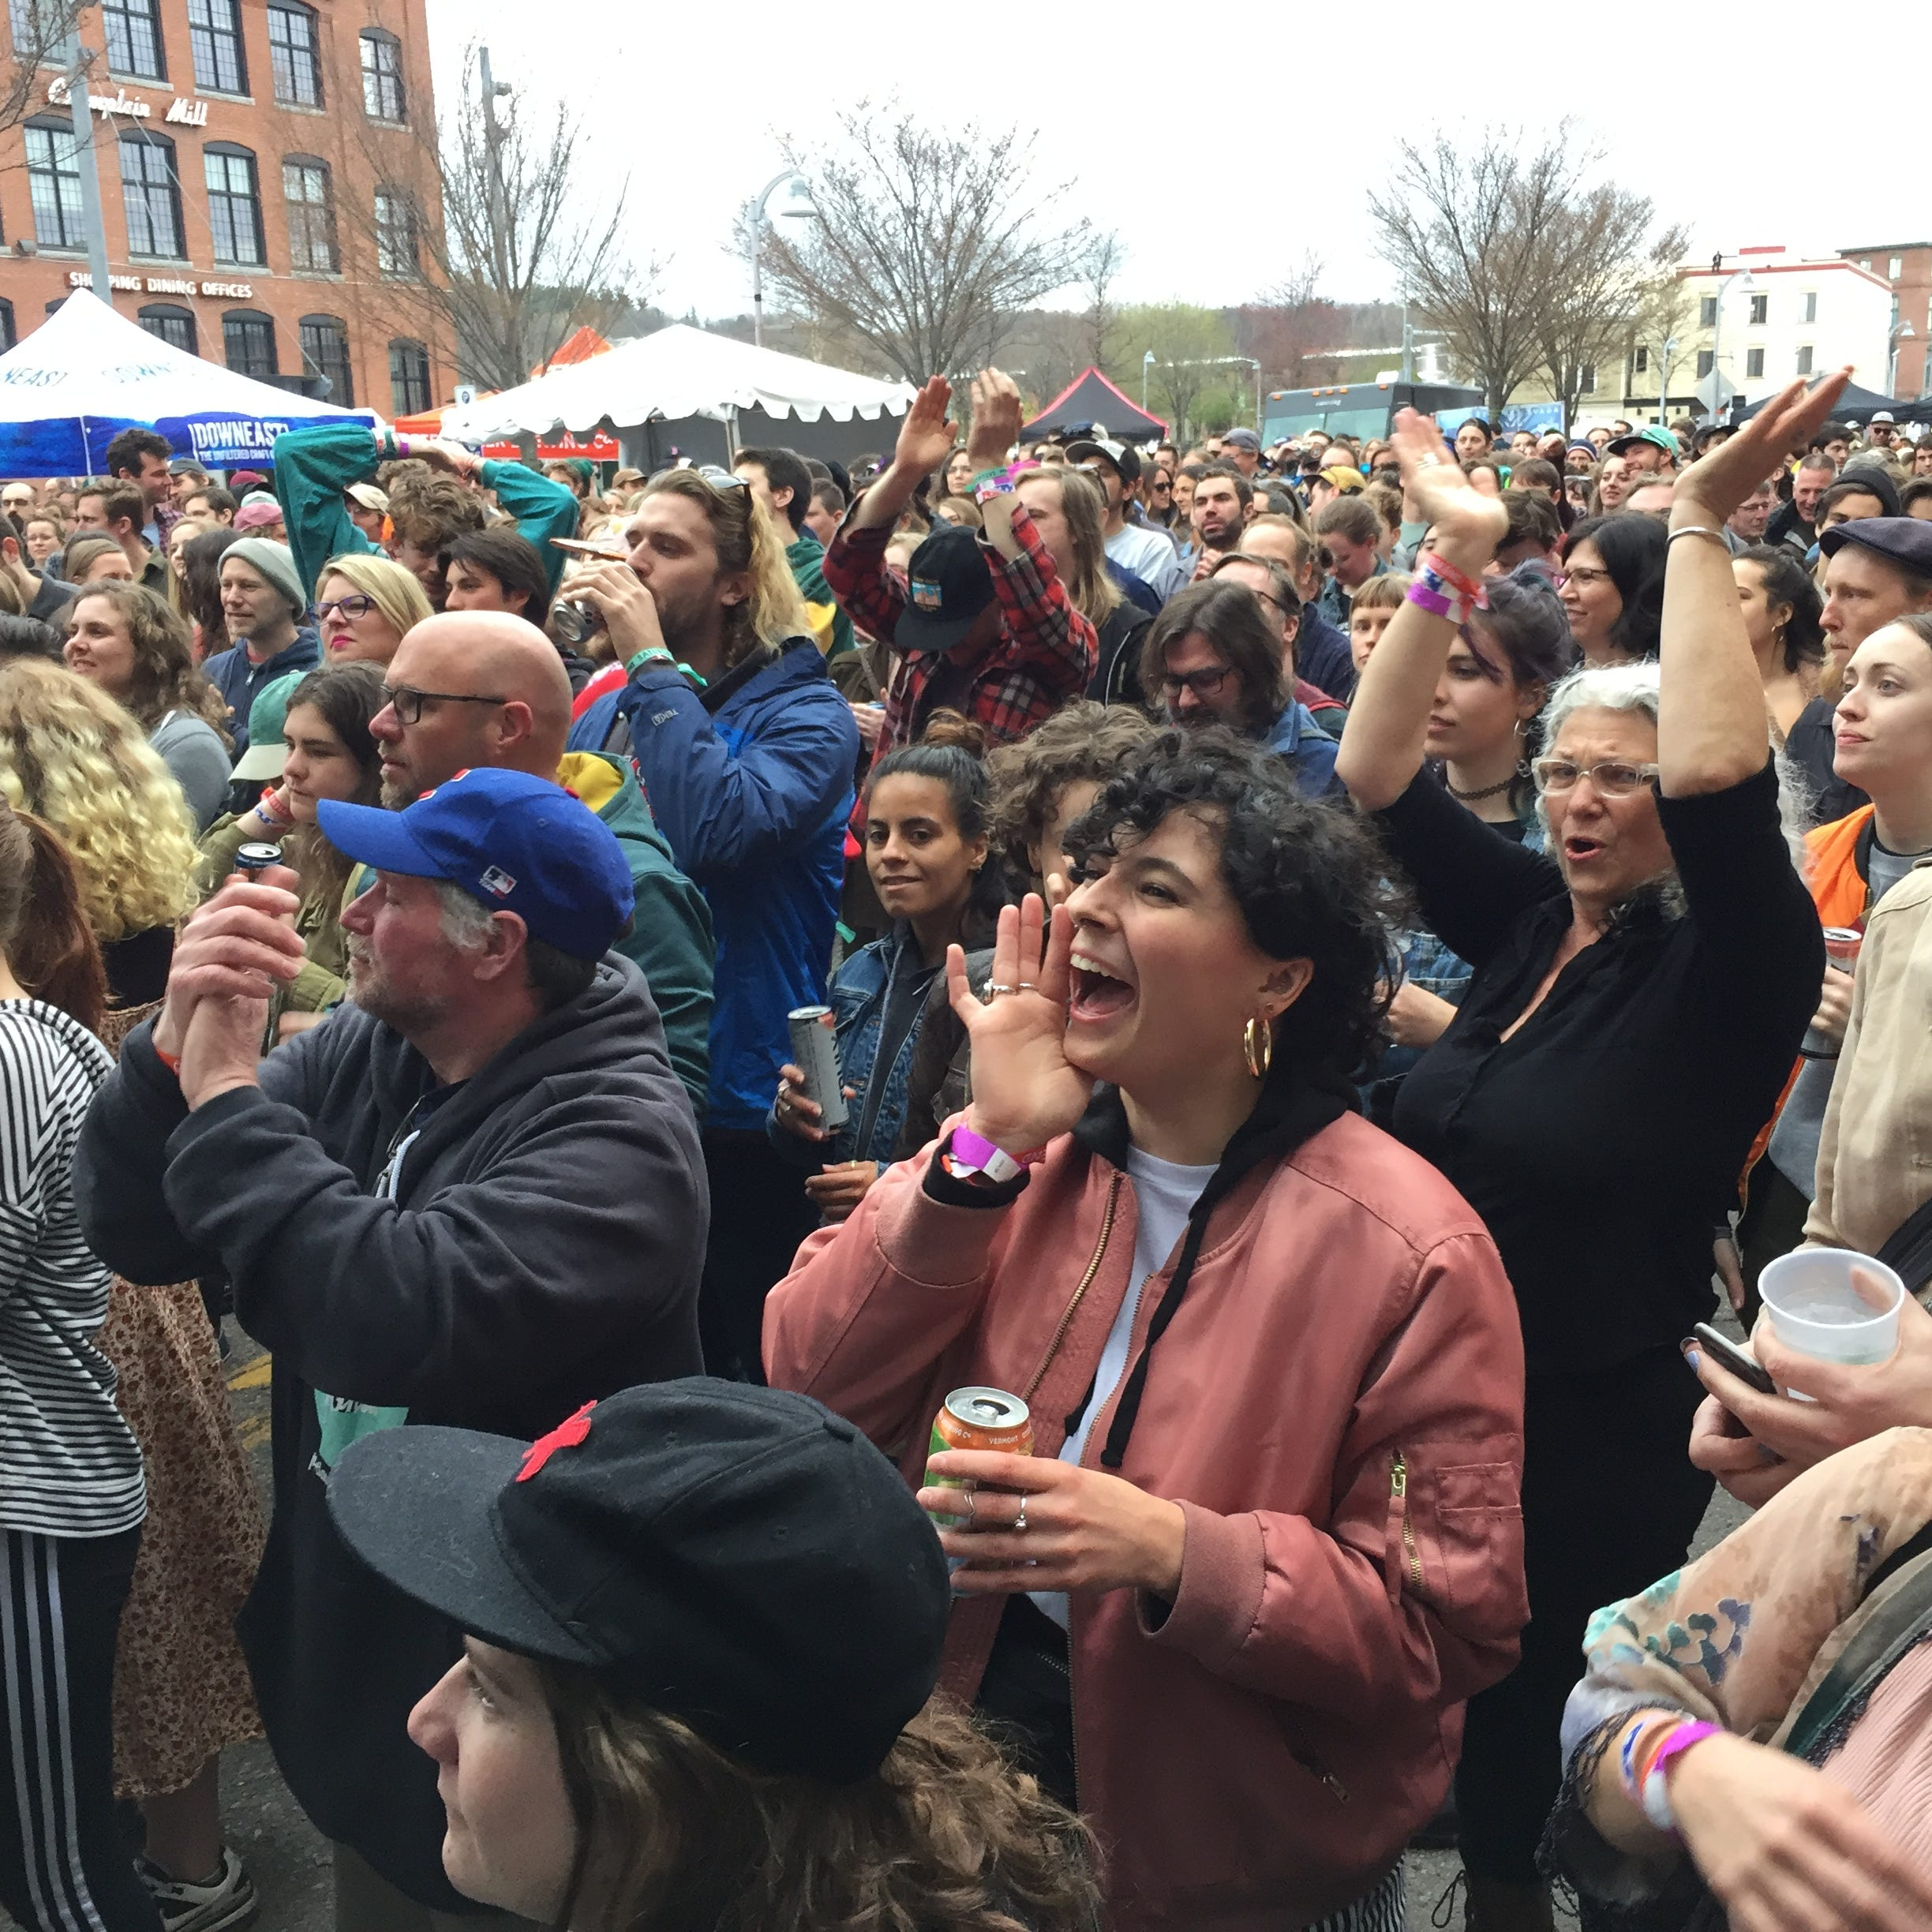 5 highlights from Waking Windows 2019 in Winooski